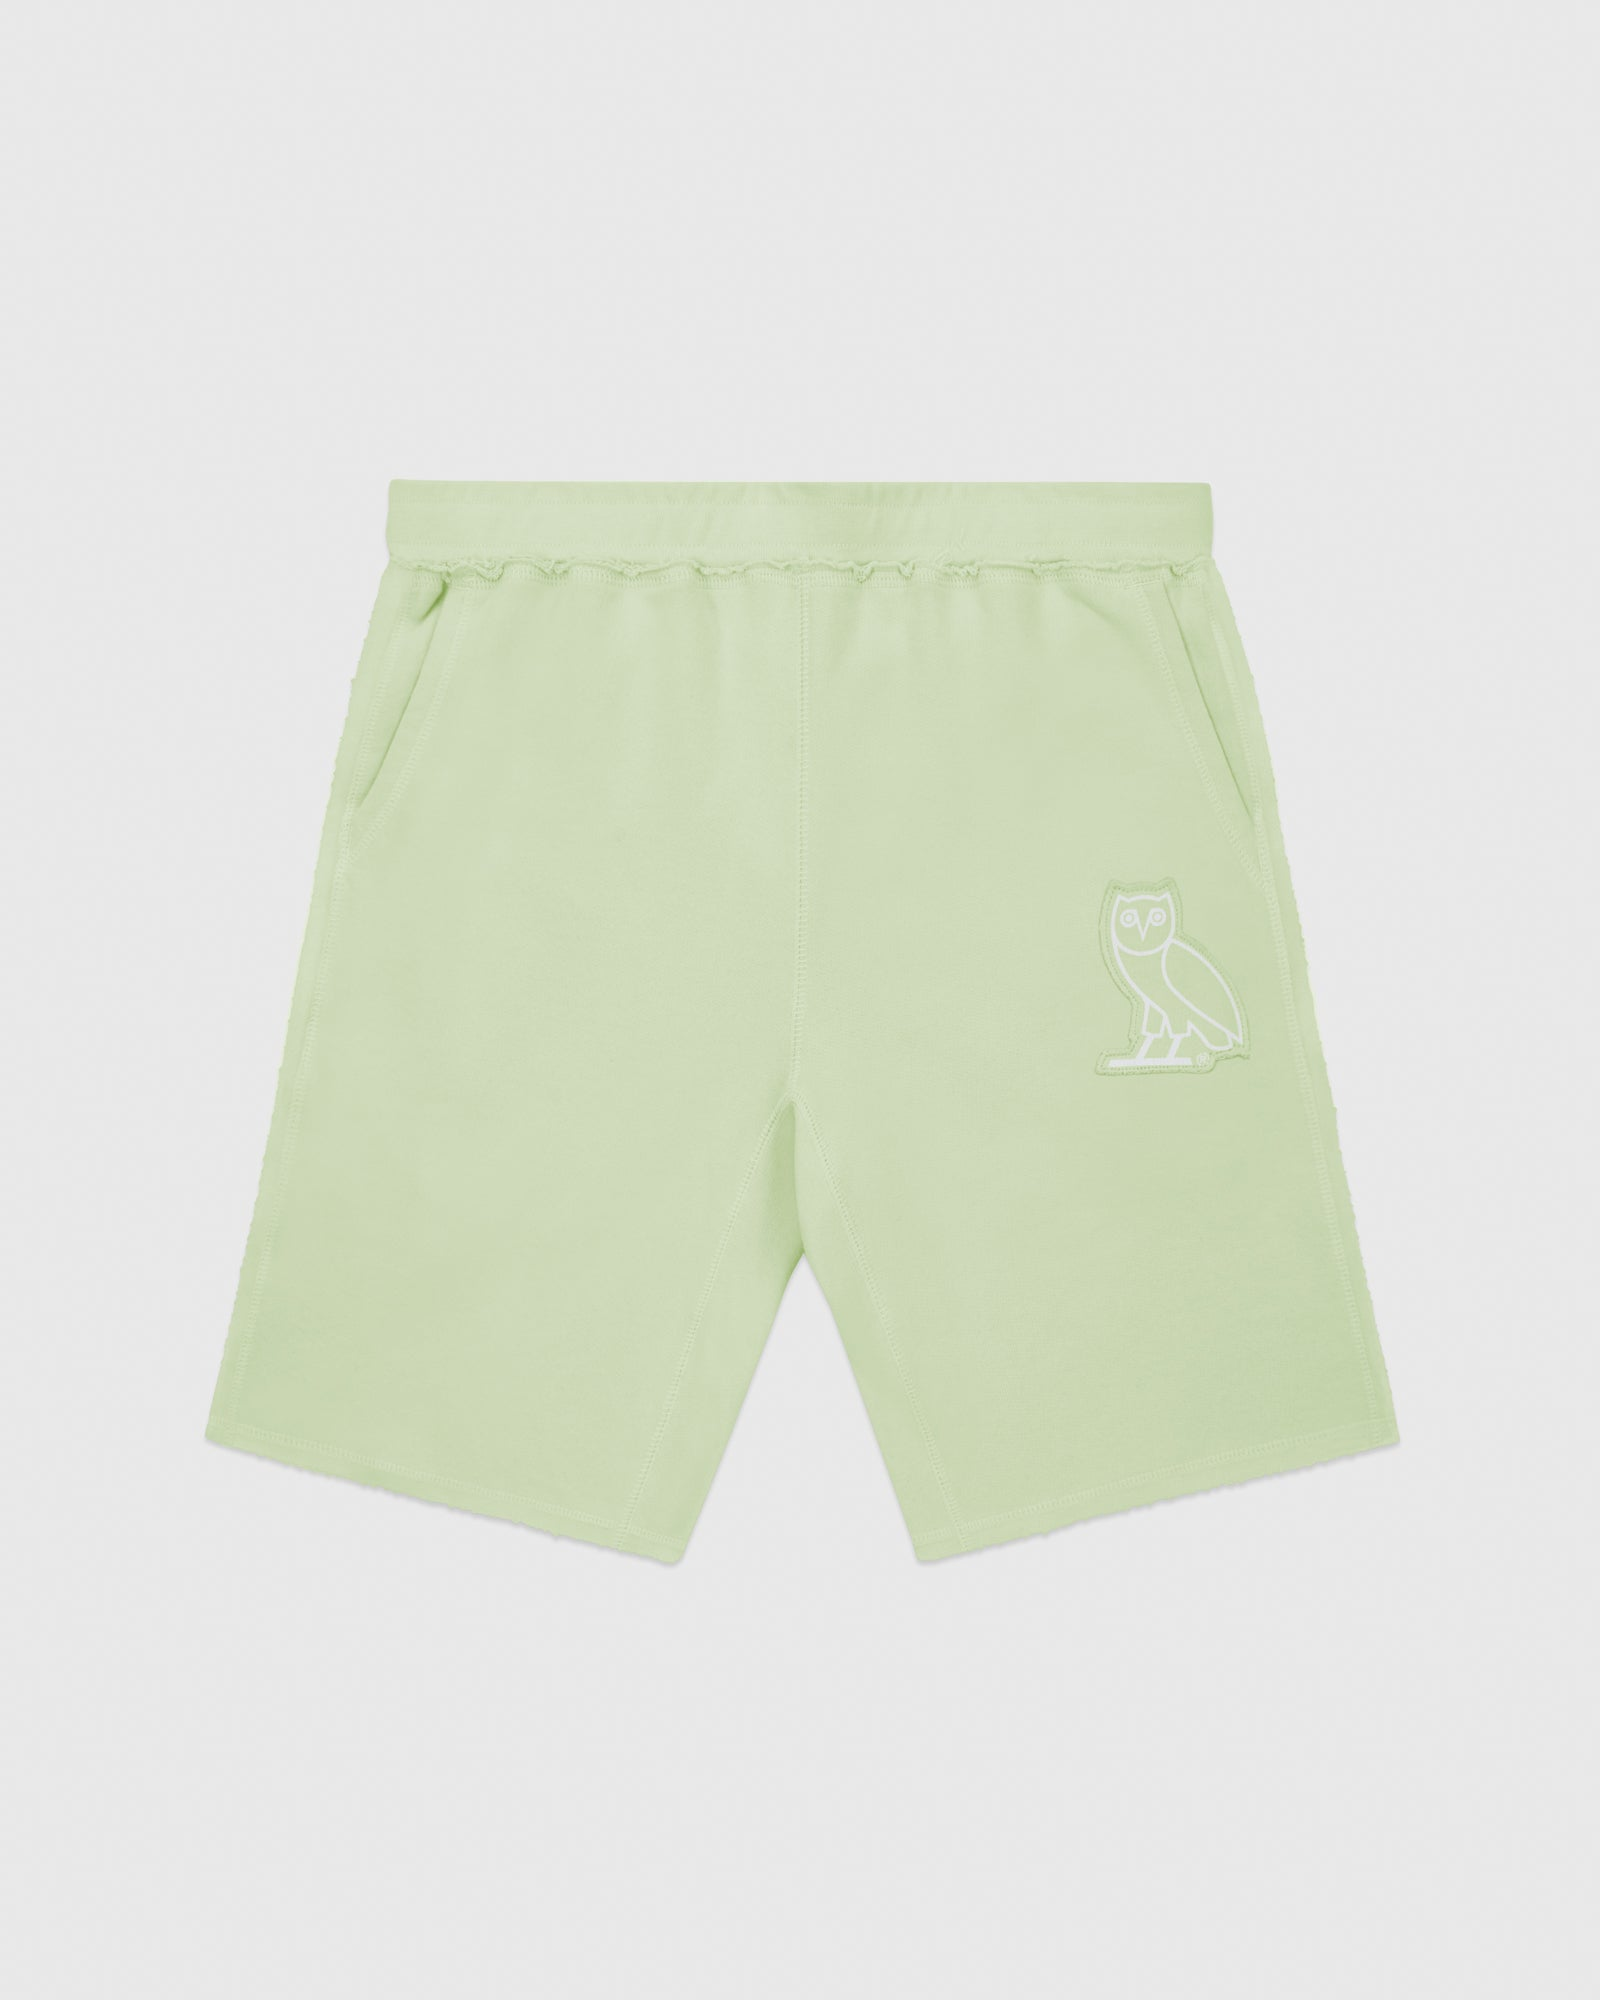 RAW EDGE FRENCH TERRY SWEATSHORT - MINT IMAGE #1